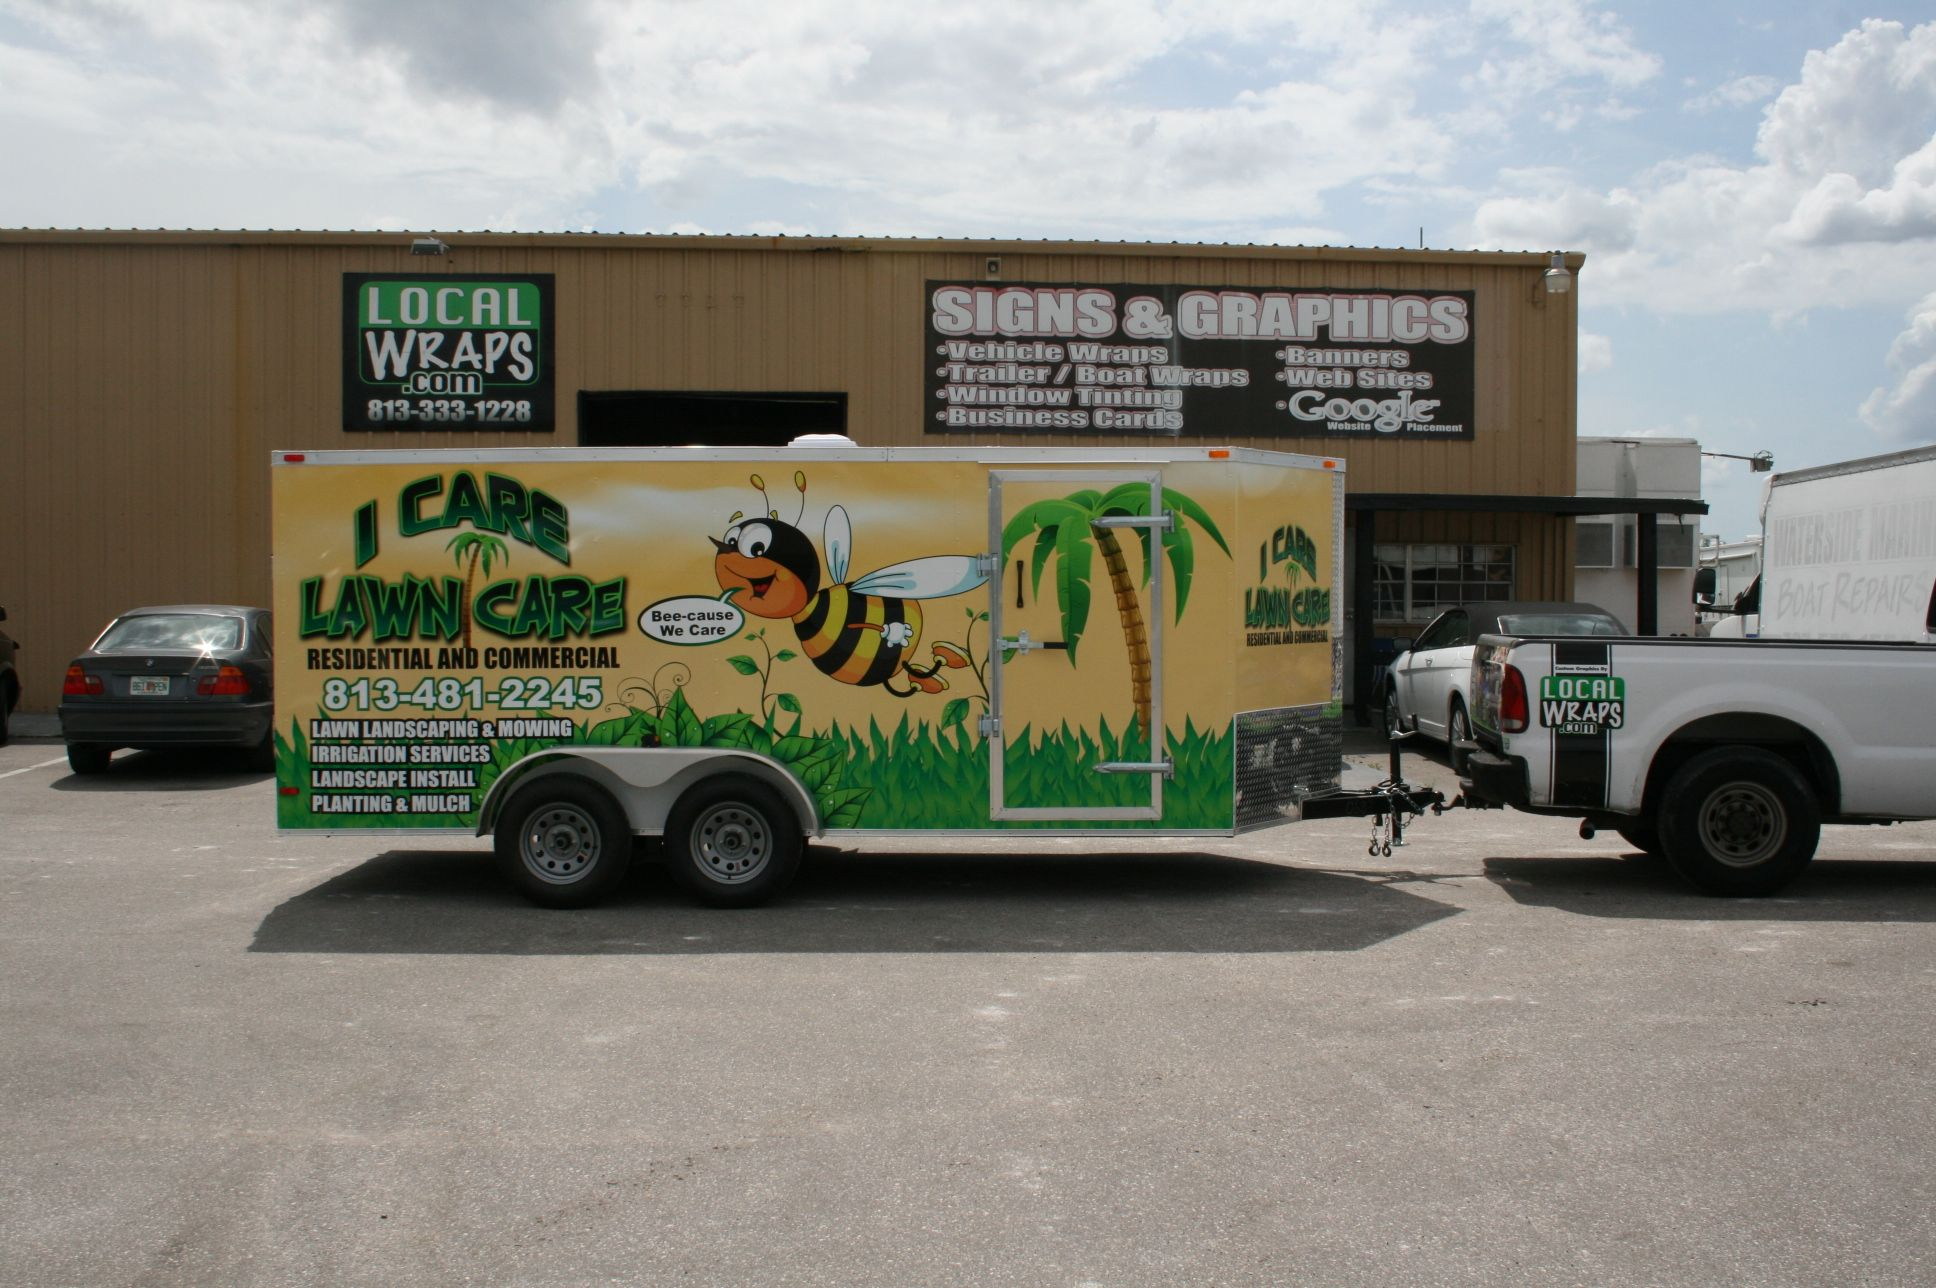 I care lawn care trailer wrap business logos and names for Landscaping company names